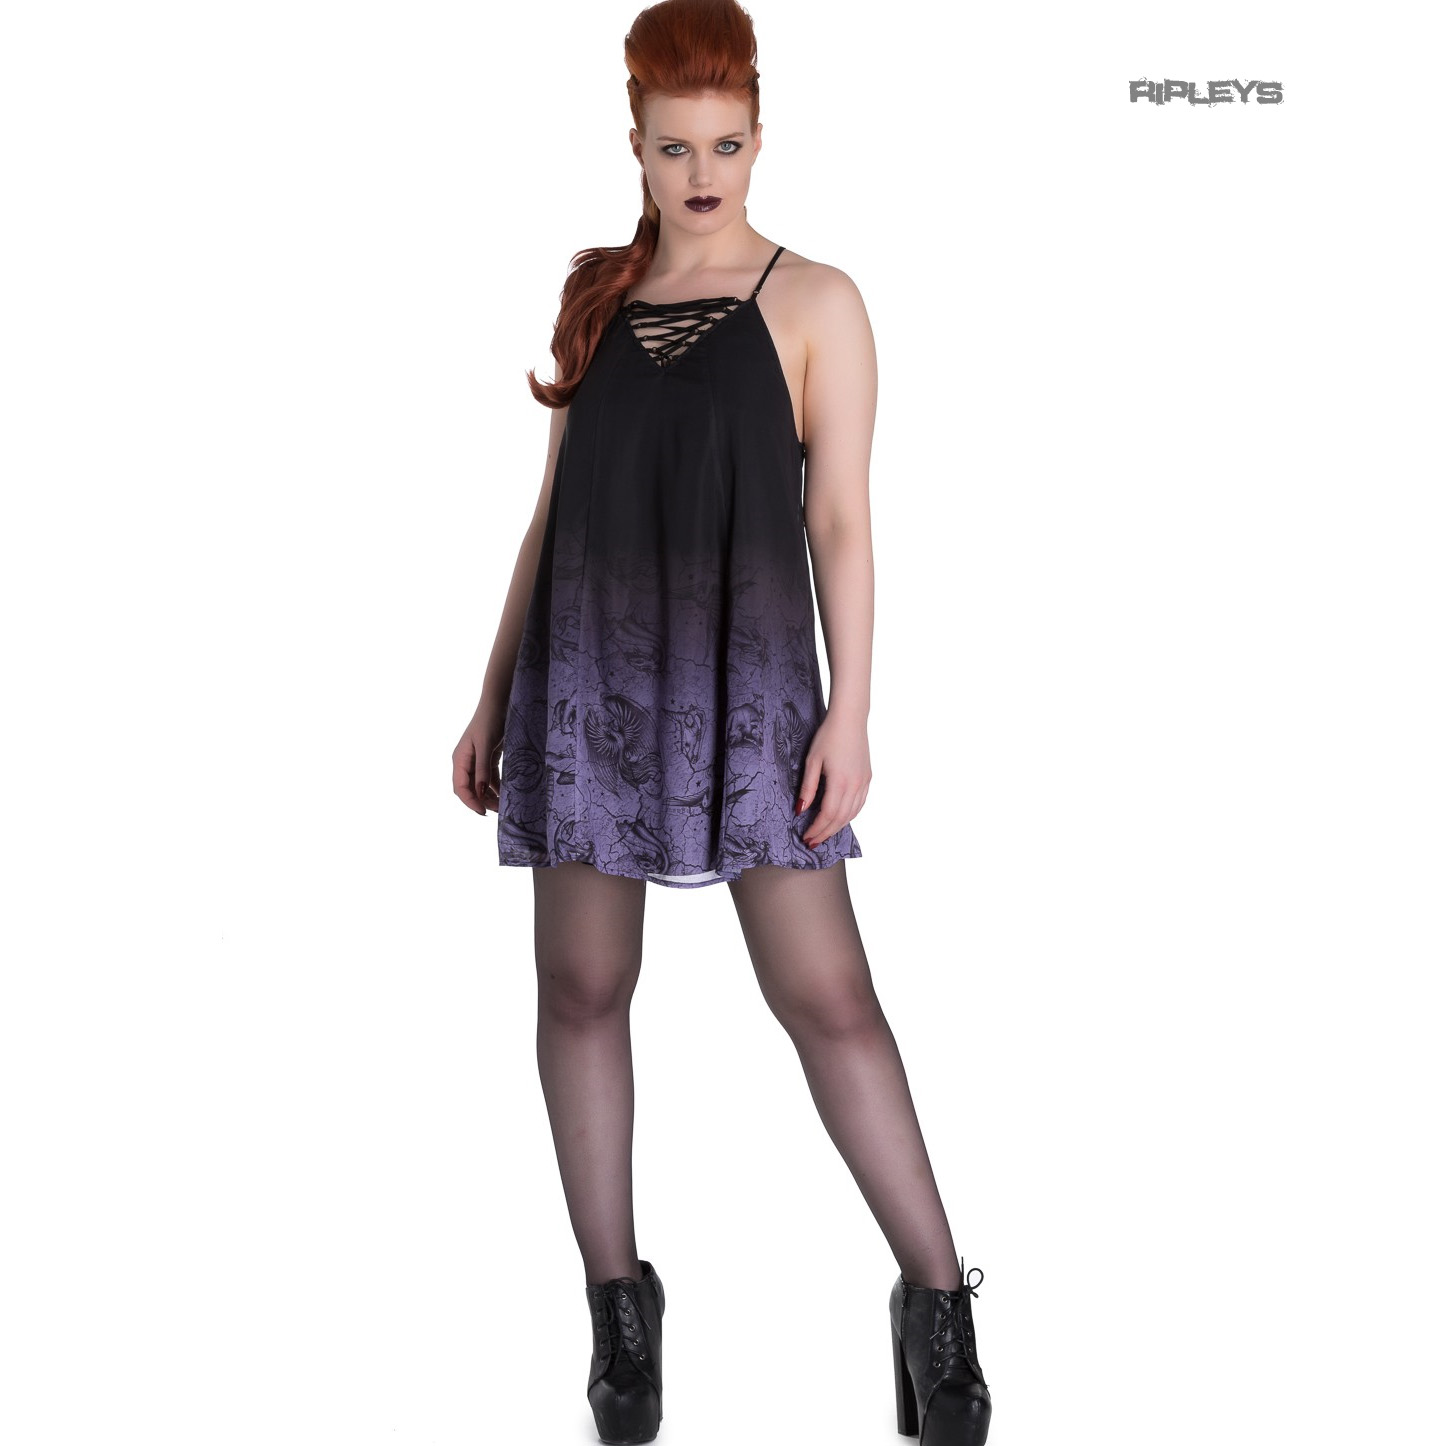 Hell-Bunny-Spin-Doctor-Goth-Lace-Up-Mini-Dress-EVADINE-Purple-Black-All-Sizes thumbnail 6